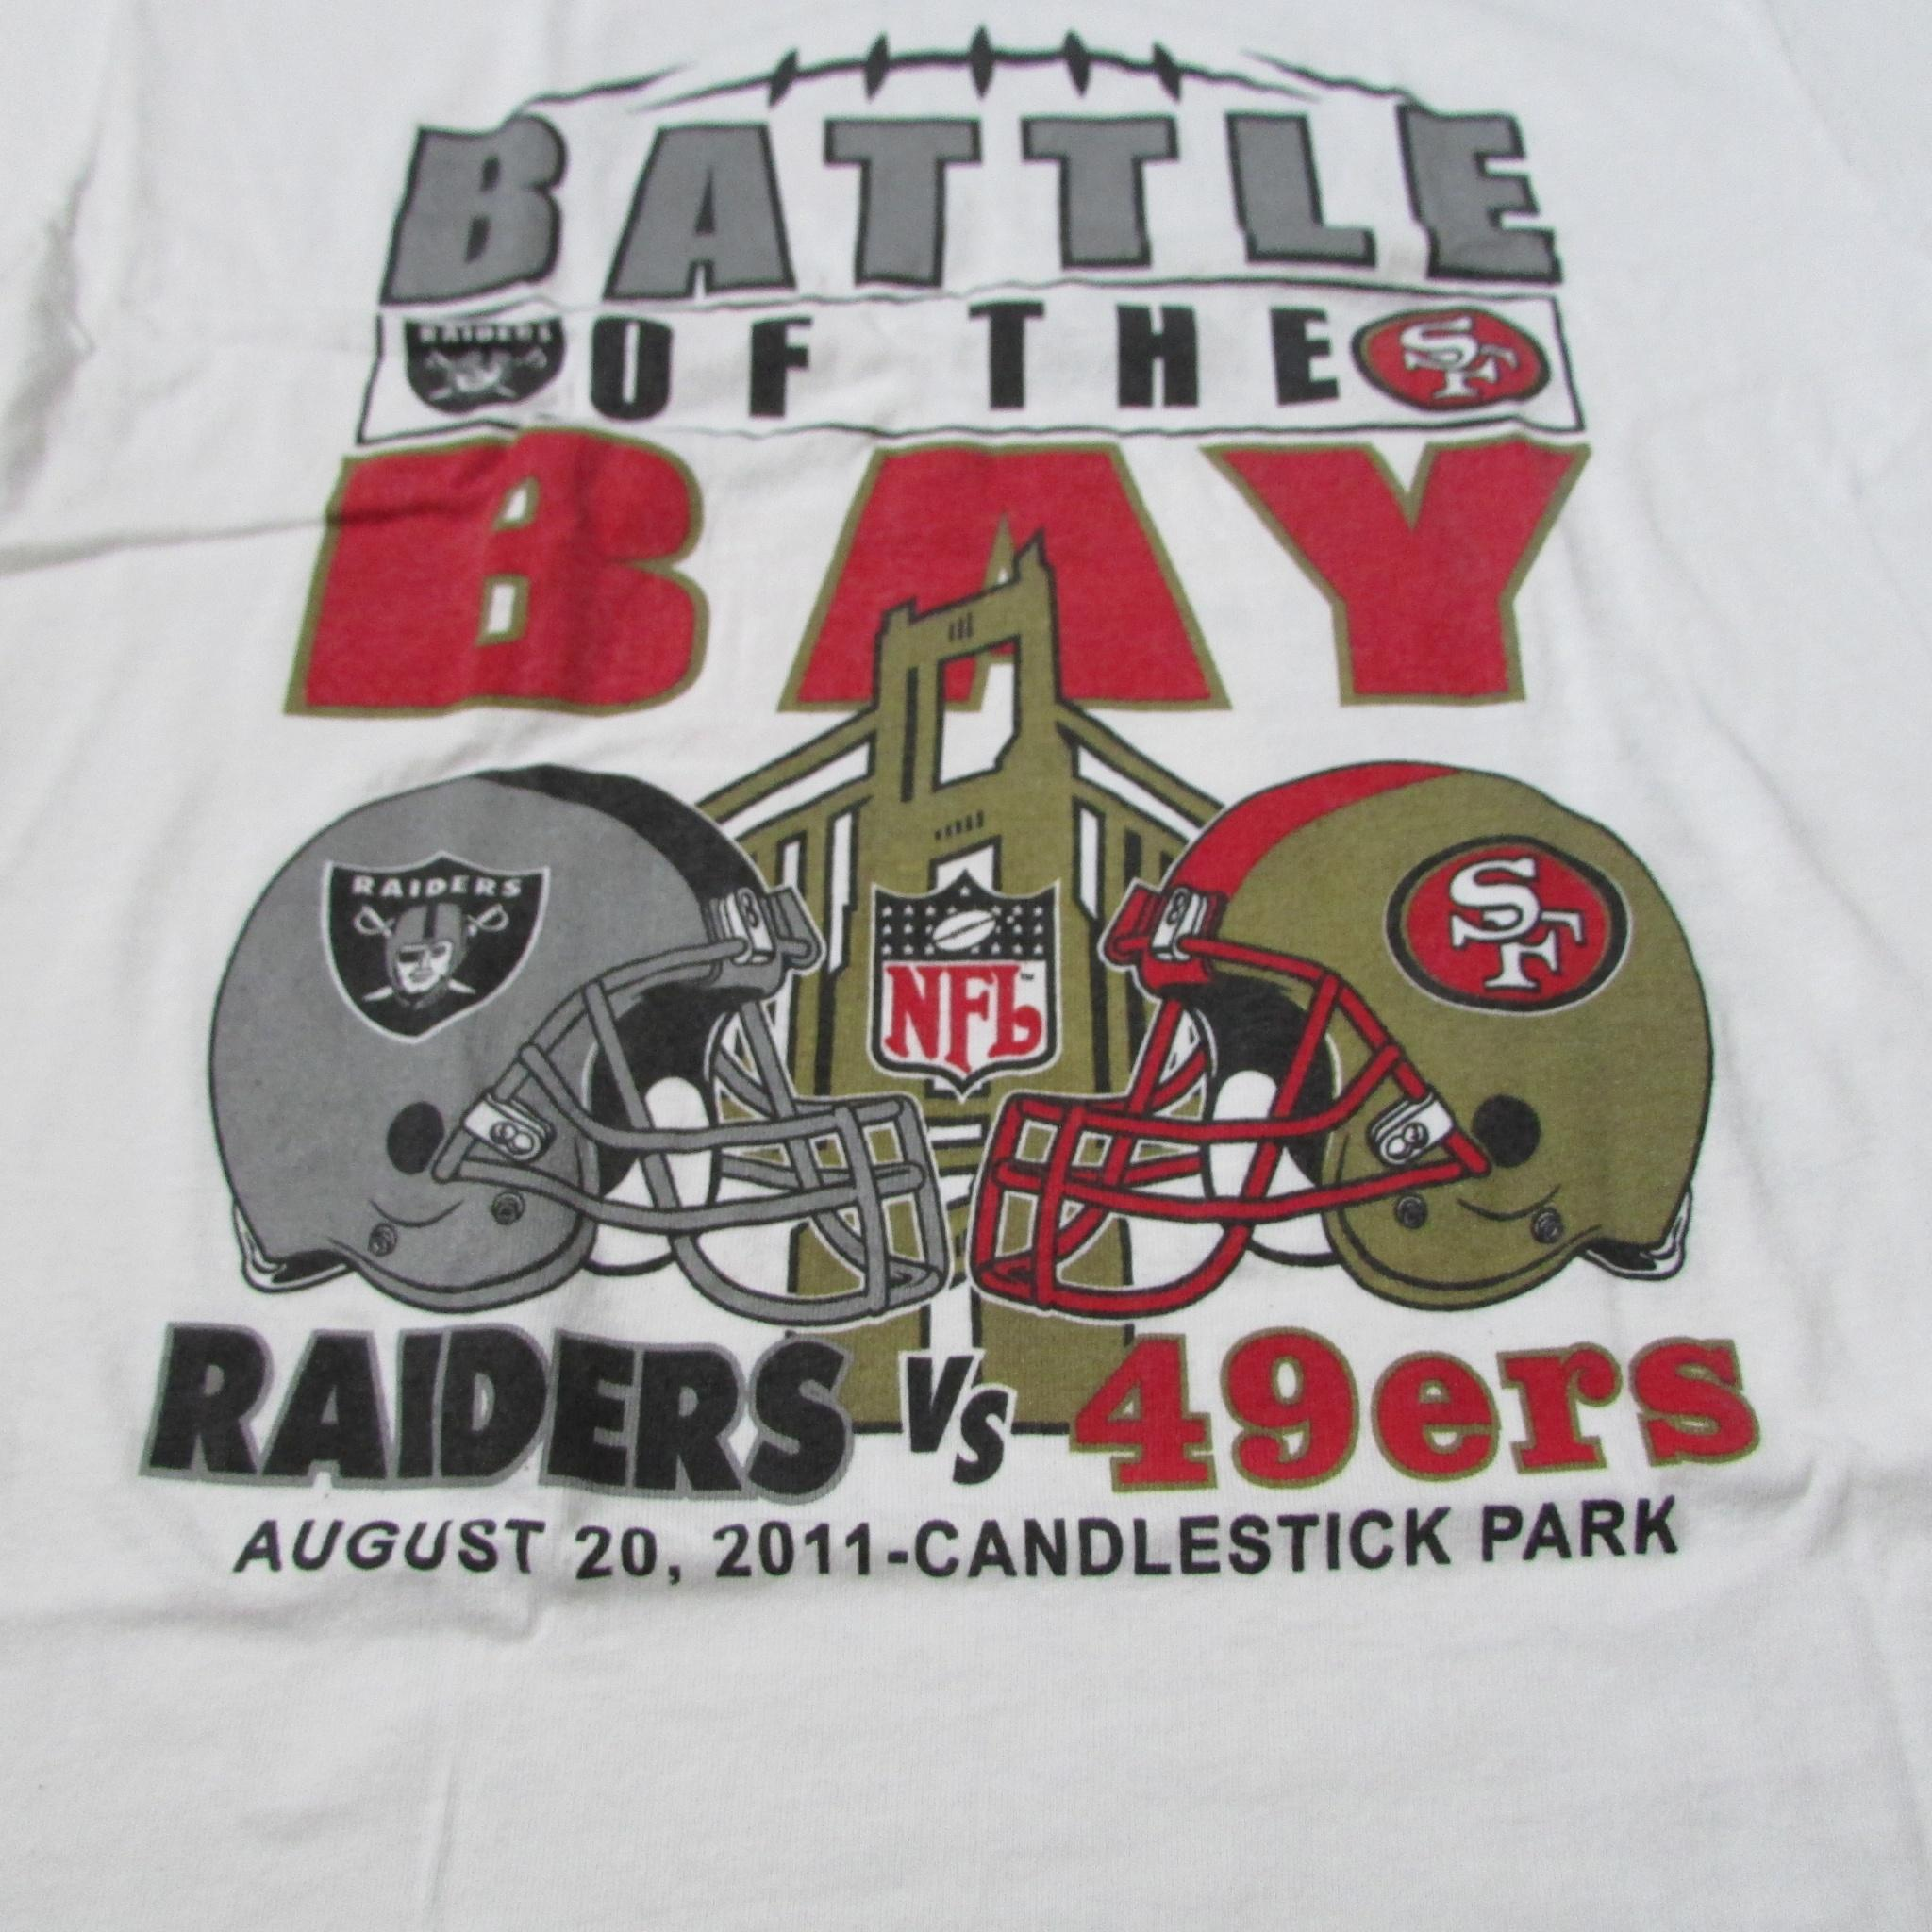 Battle of The Bay Raiders 49ers Football T-Shirt Candlestick Park 2011 Sz XL